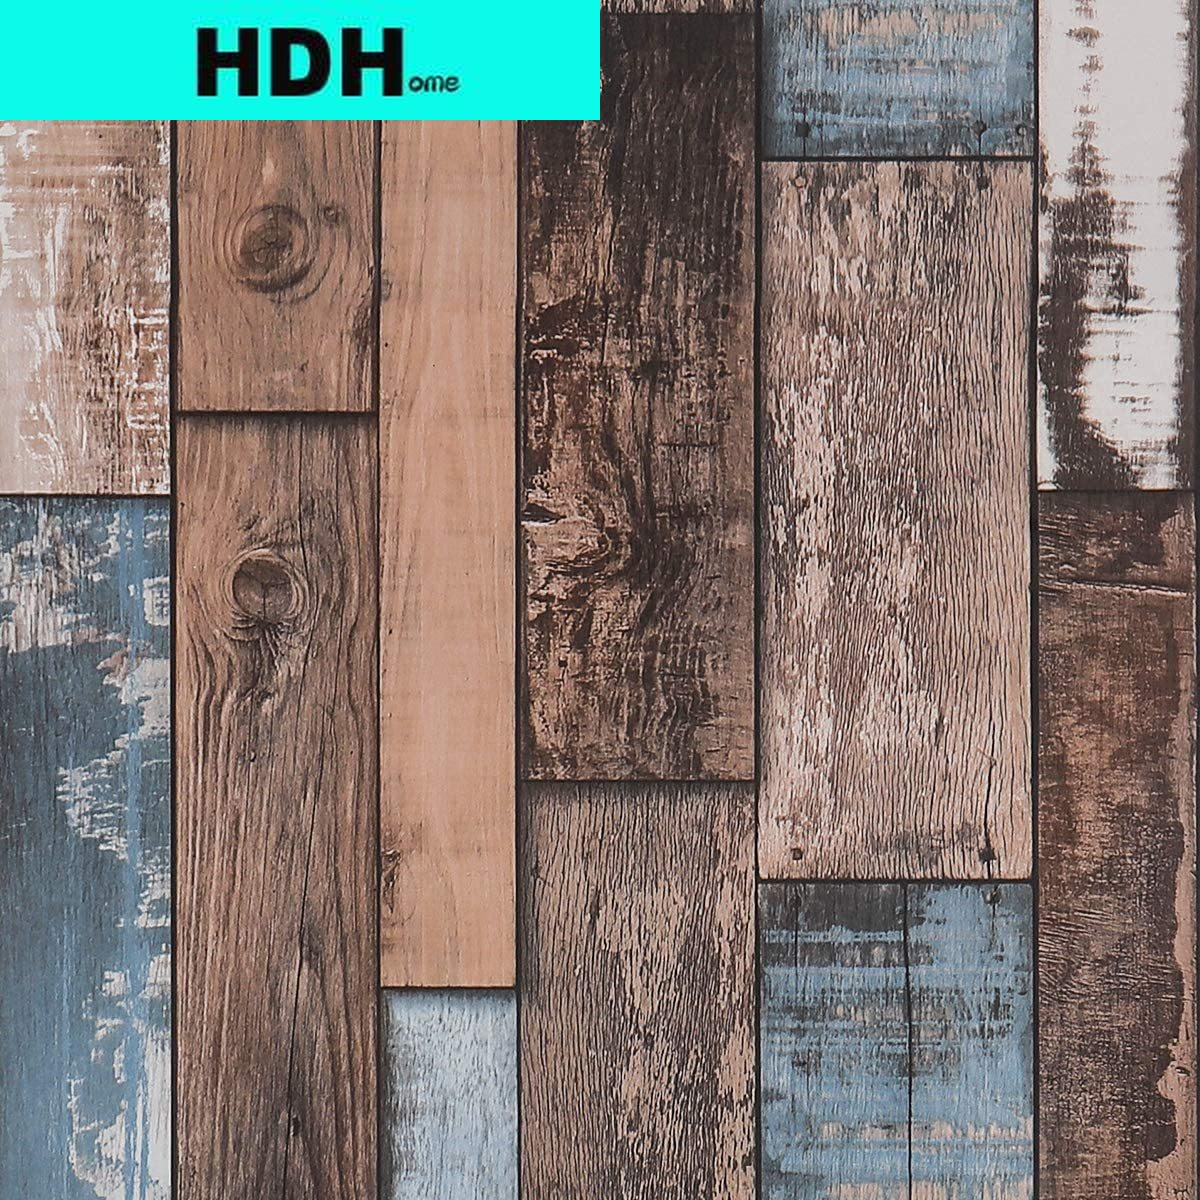 Teal Wood Wallpaper Stick and Peel Shiplap Wall Paper Self Adhesive Wood Contact Paper Decorative Vintage Removable Waterproof brown wood papers wood peel and stick wallpaper removable wood grain self adhesive vintage distressed wood grain renovated paper